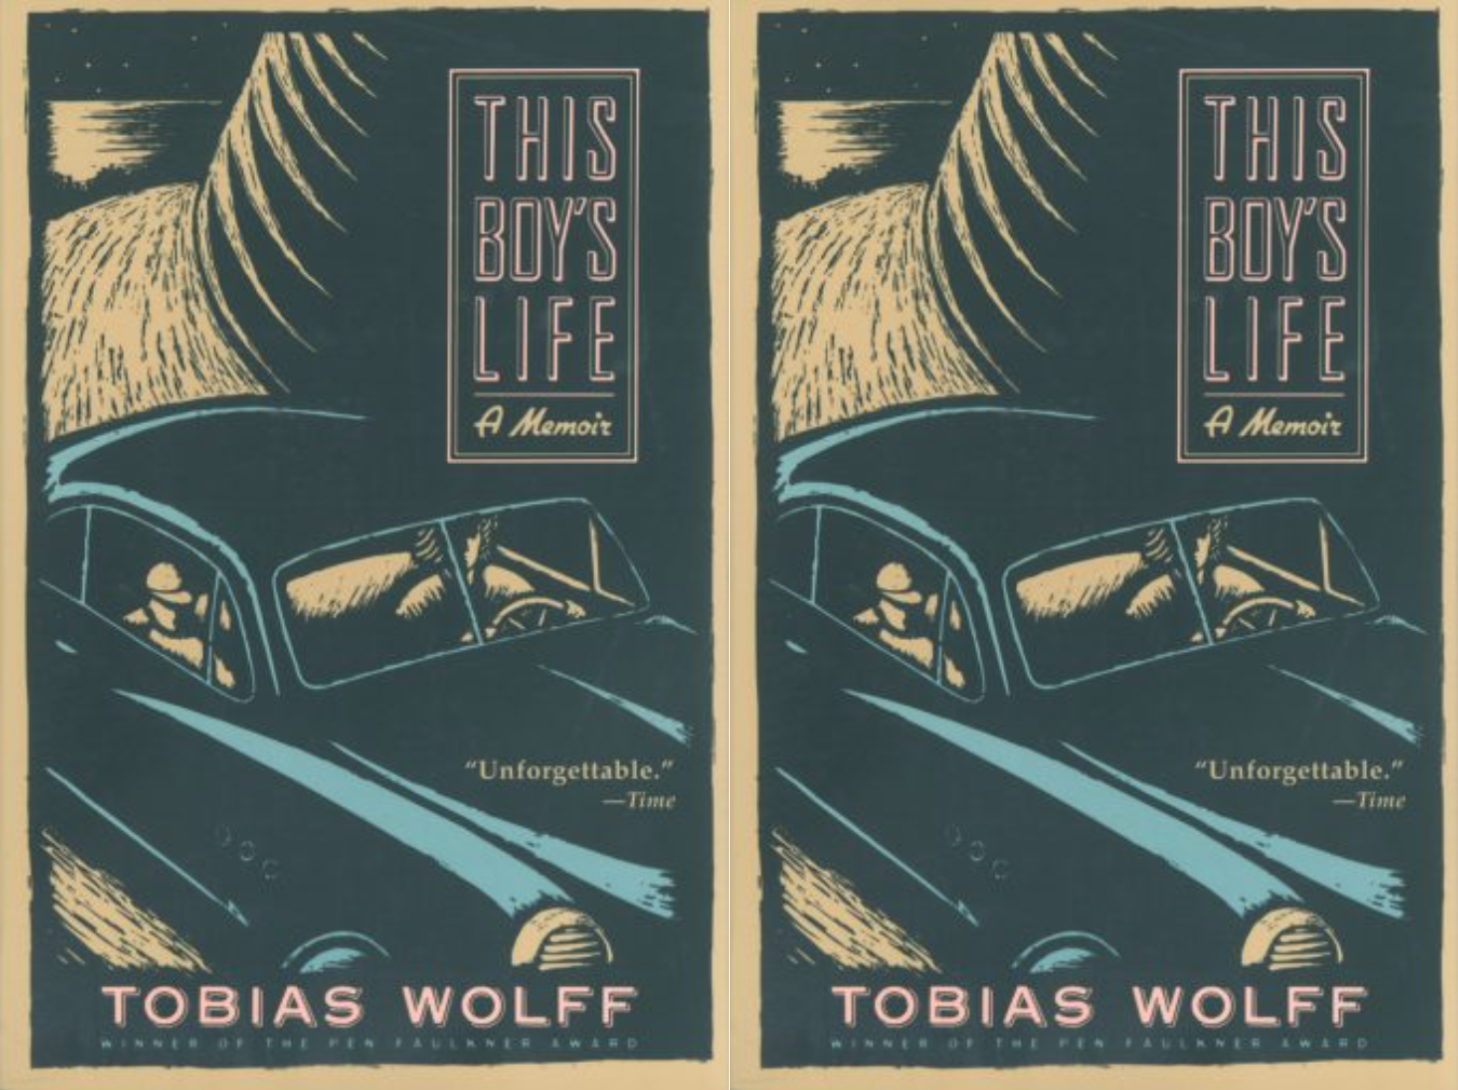 Cover of the book This Boy's Life